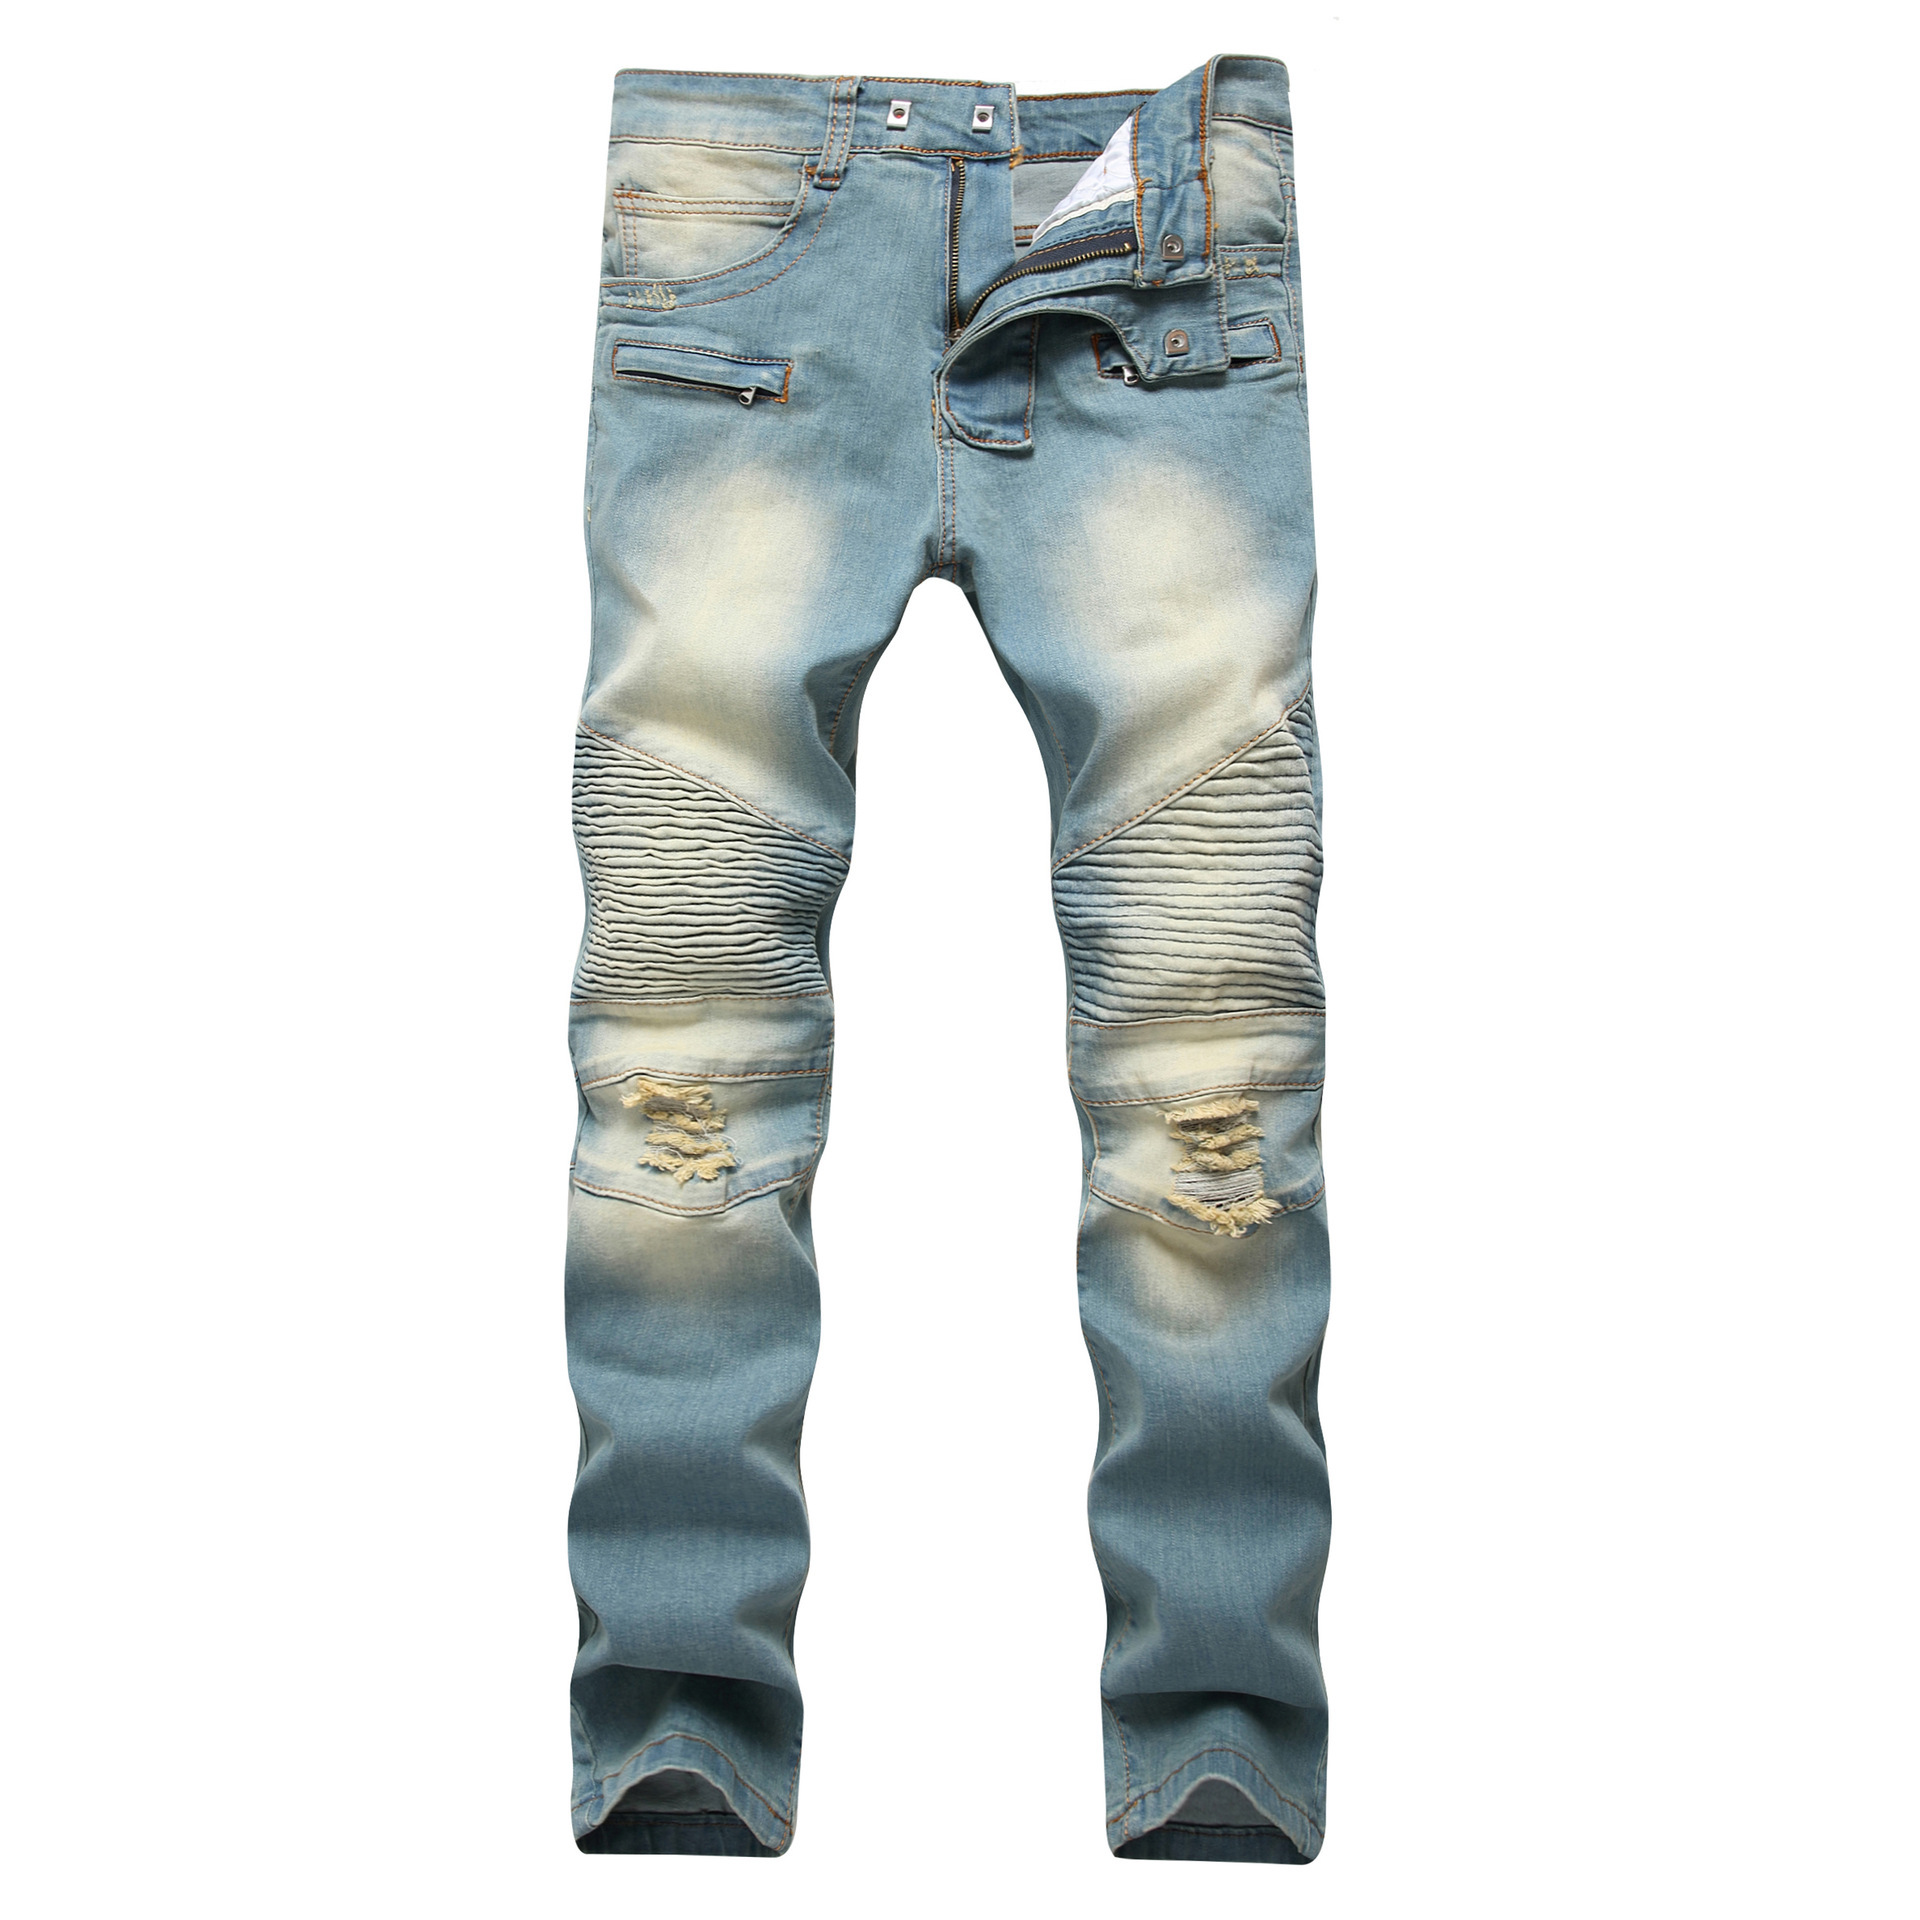 FOR MEN'S WEAR Zipper Decorations Jeans With Holes Drag Yellow Nostalgic Men Europe And America High Street Stretch Trousers